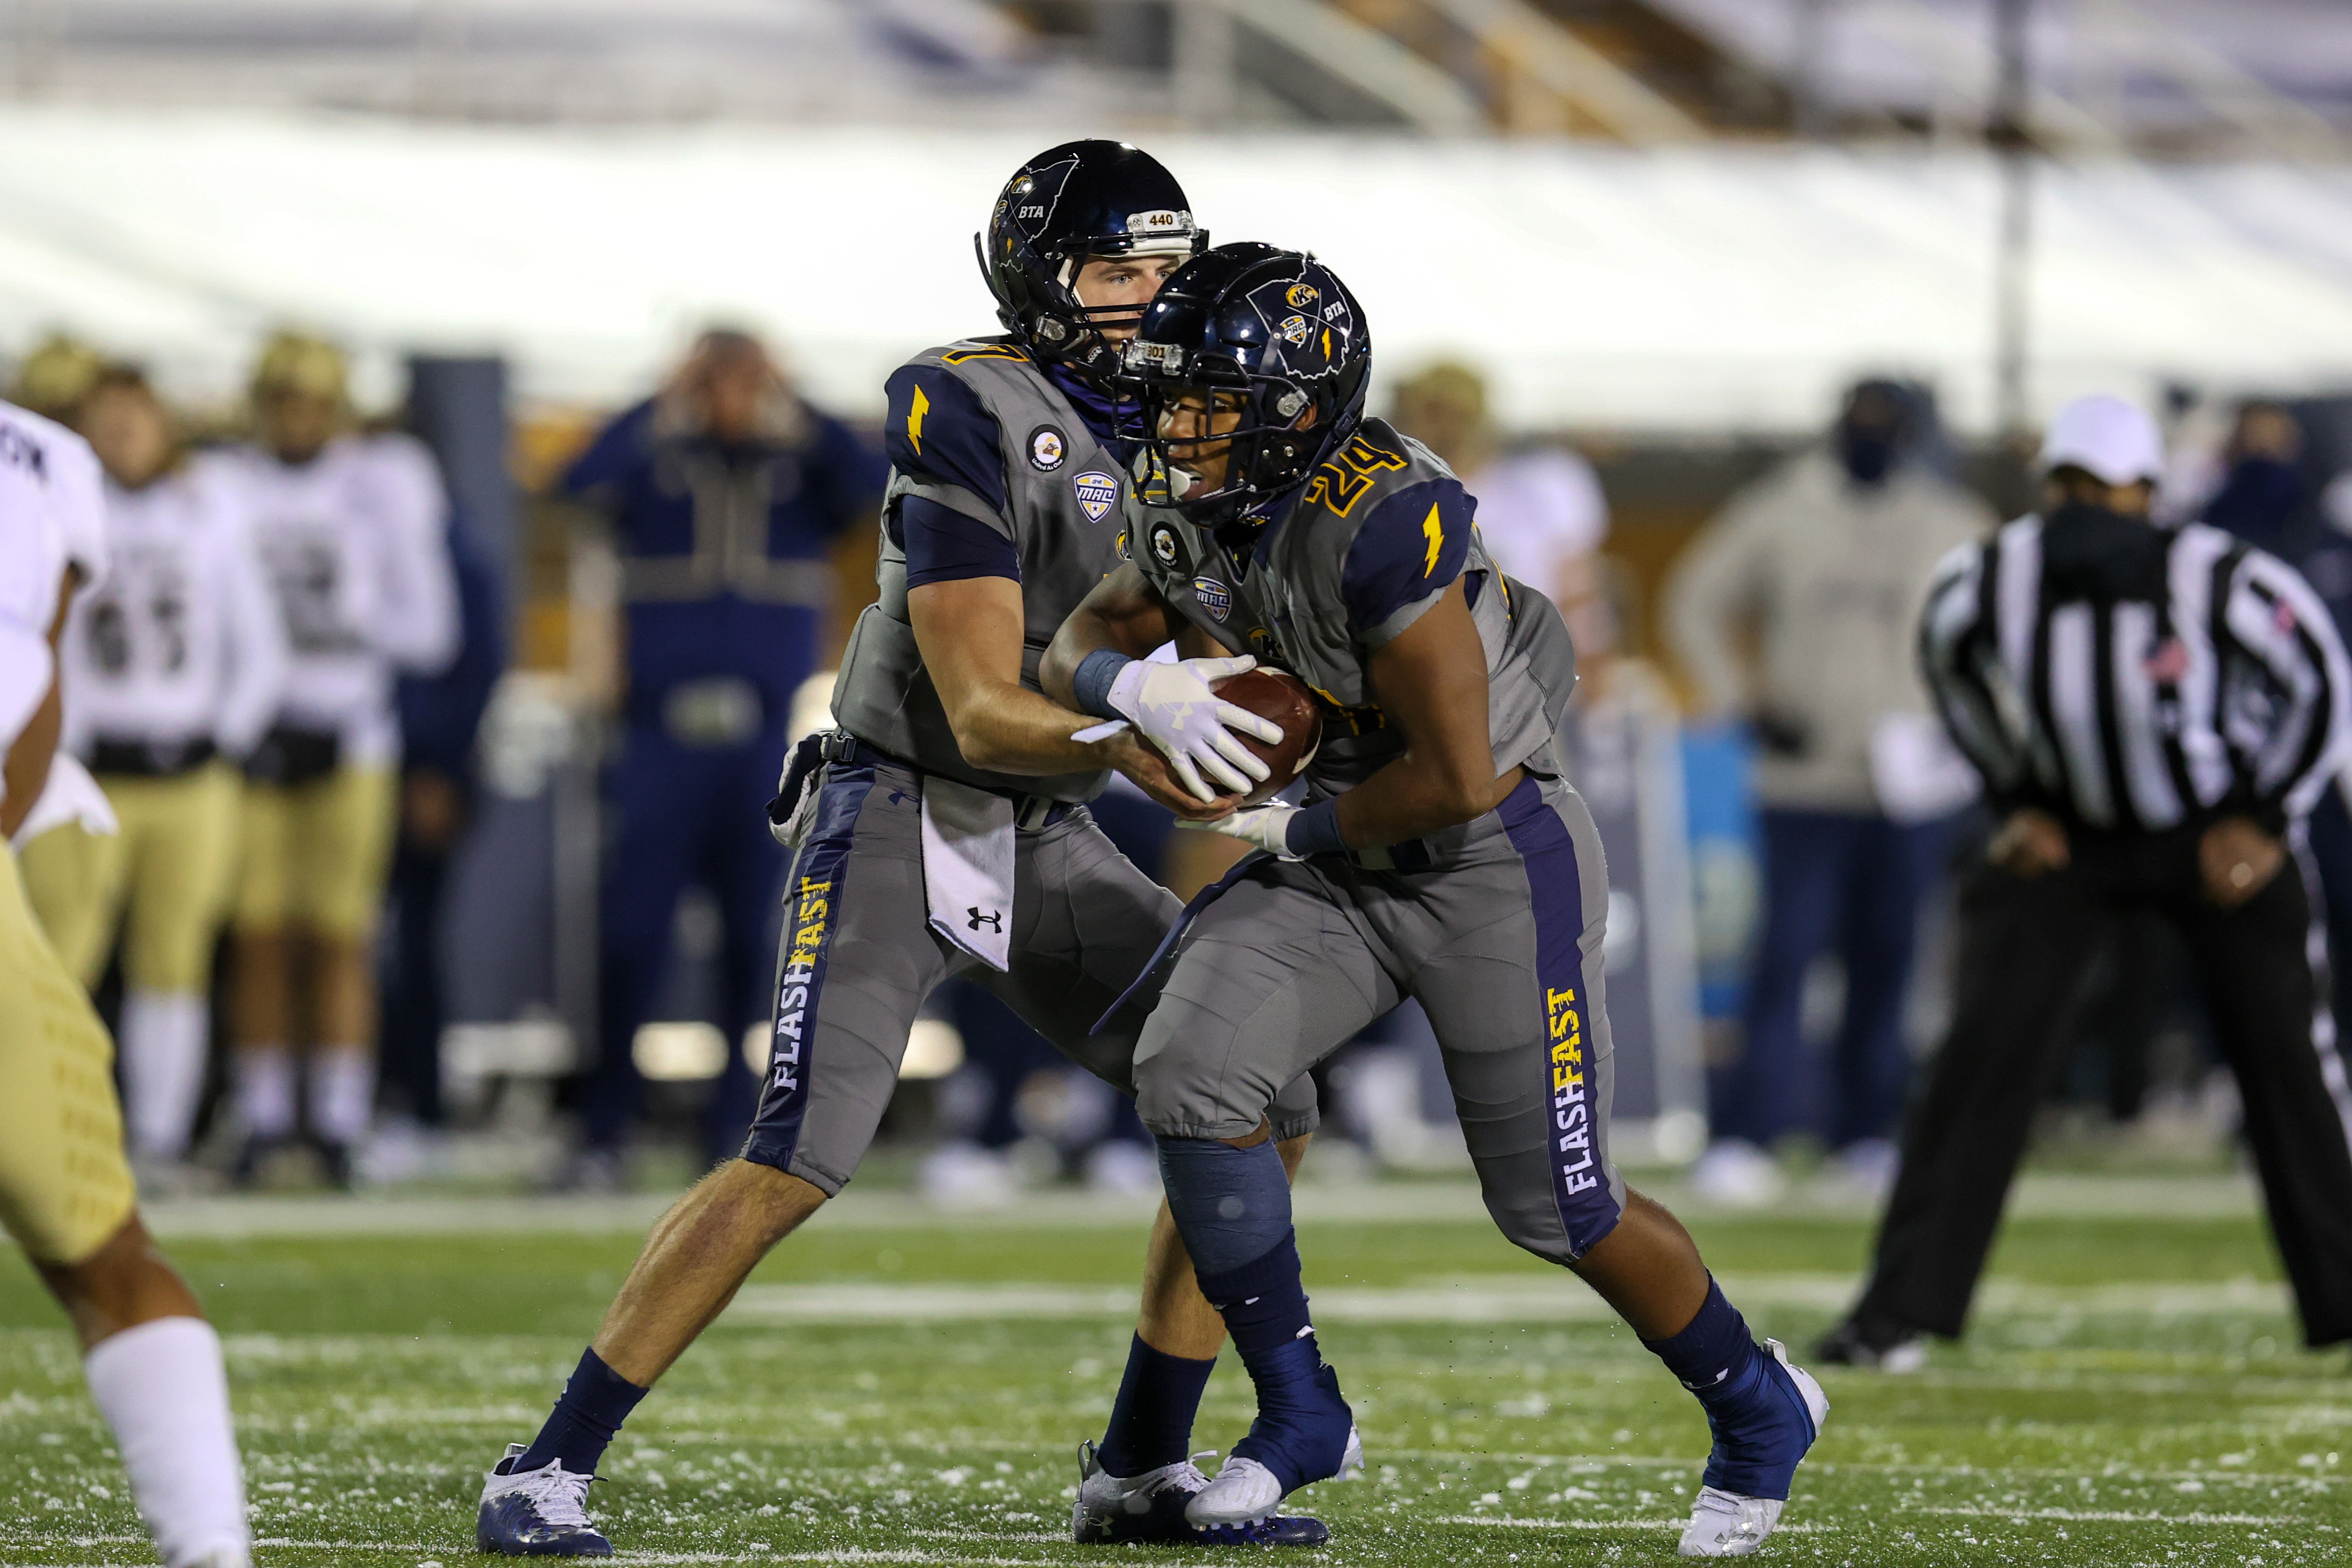 COLLEGE FOOTBALL: NOV 17 Akron at Kent State